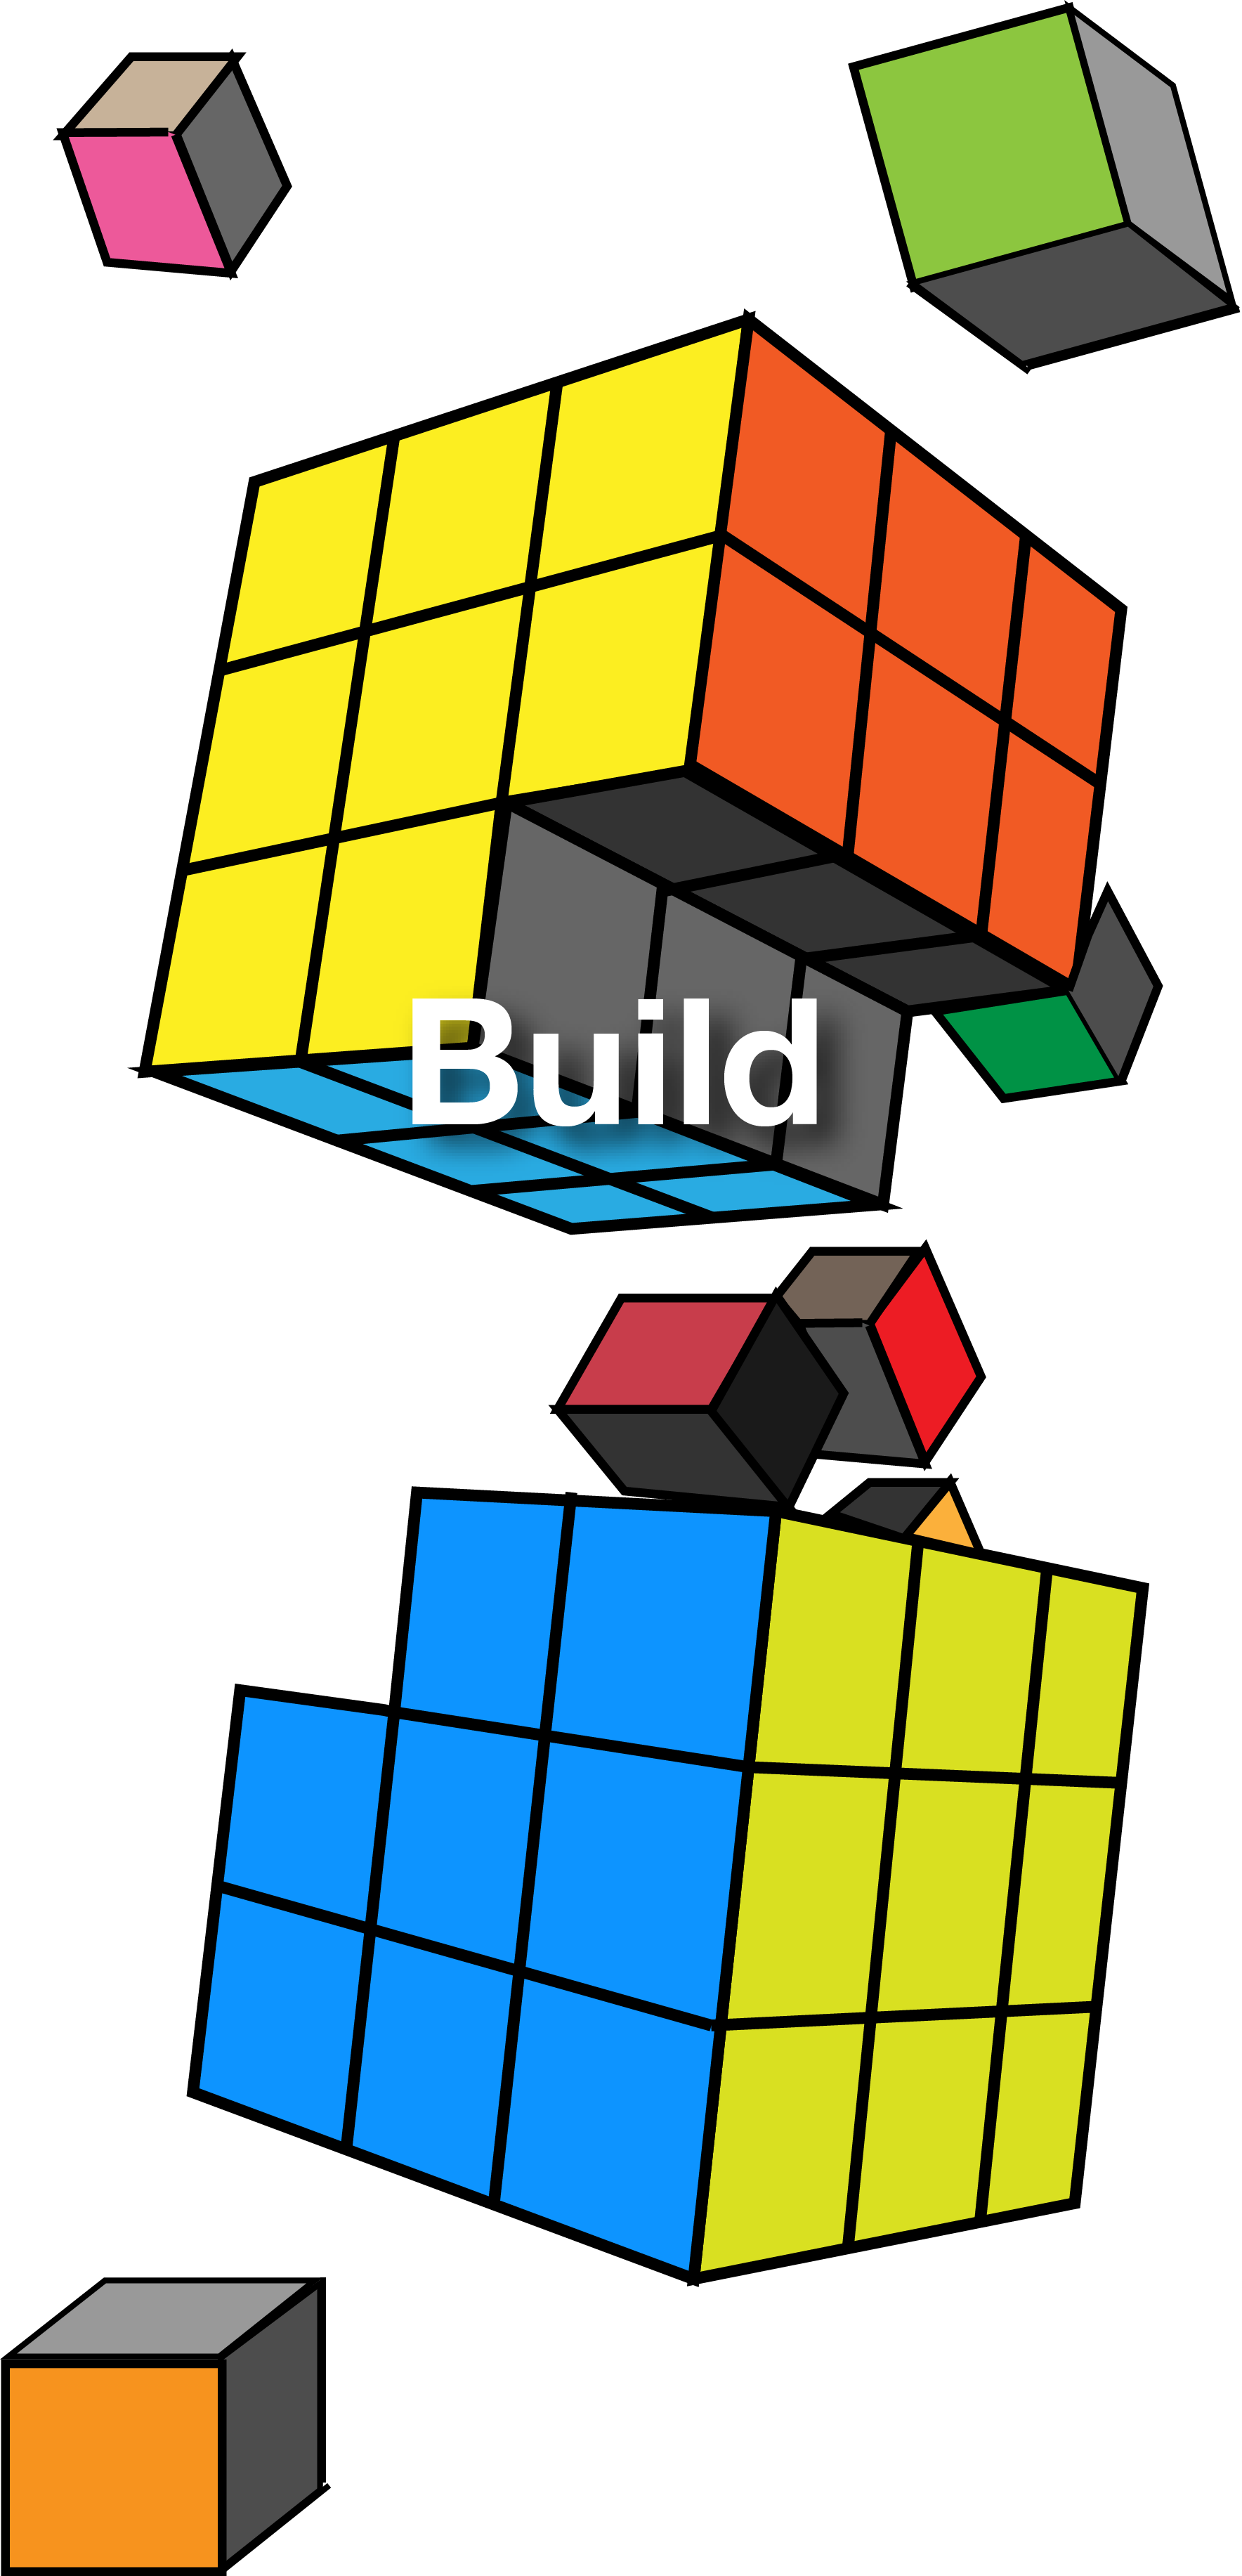 BuildS.png